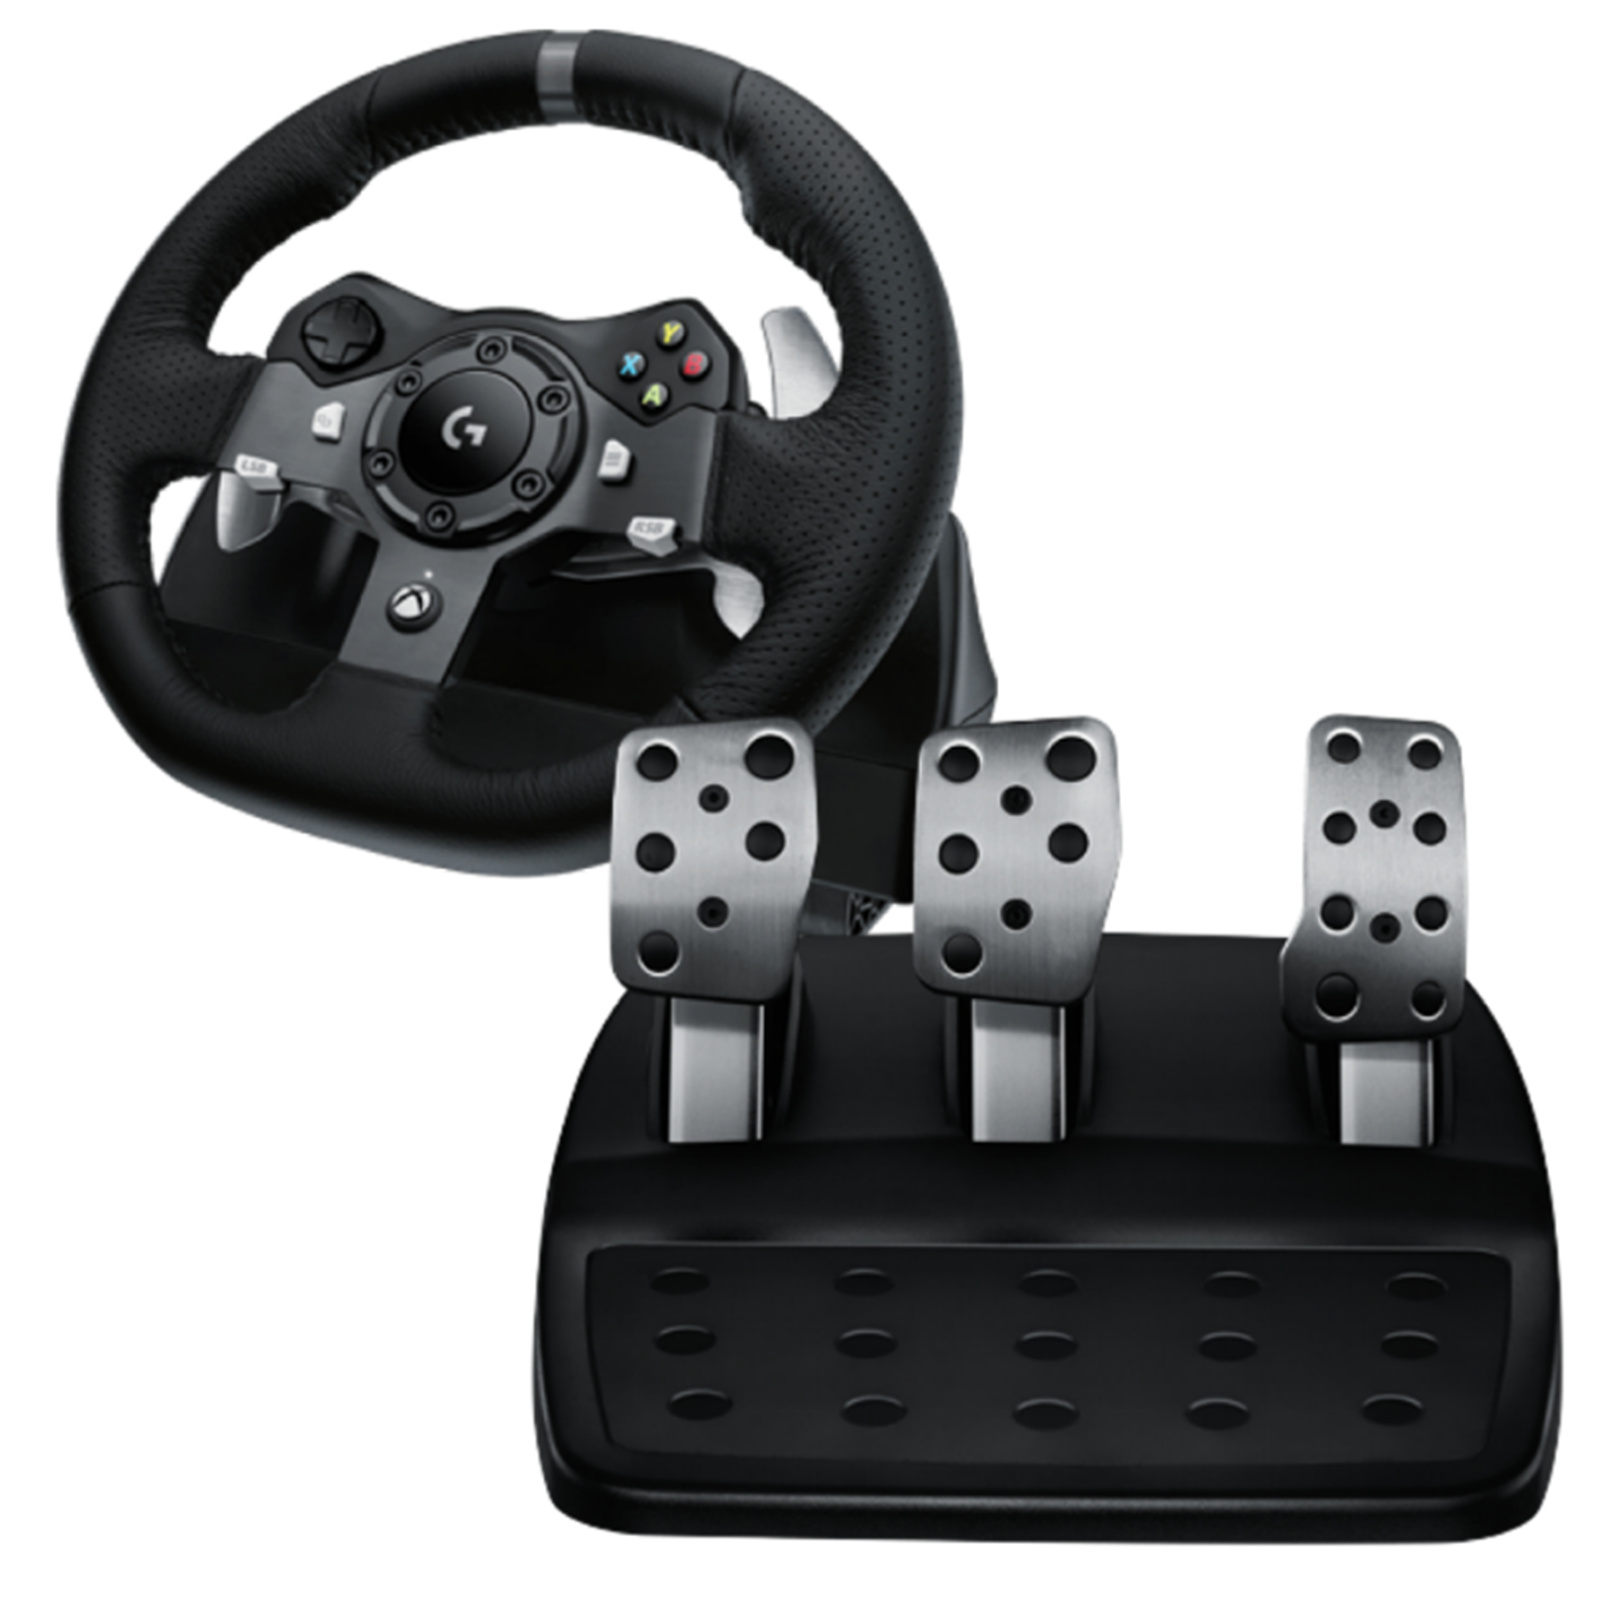 Buy the Logitech G920 Driving Force Racing Wheel Gaming for